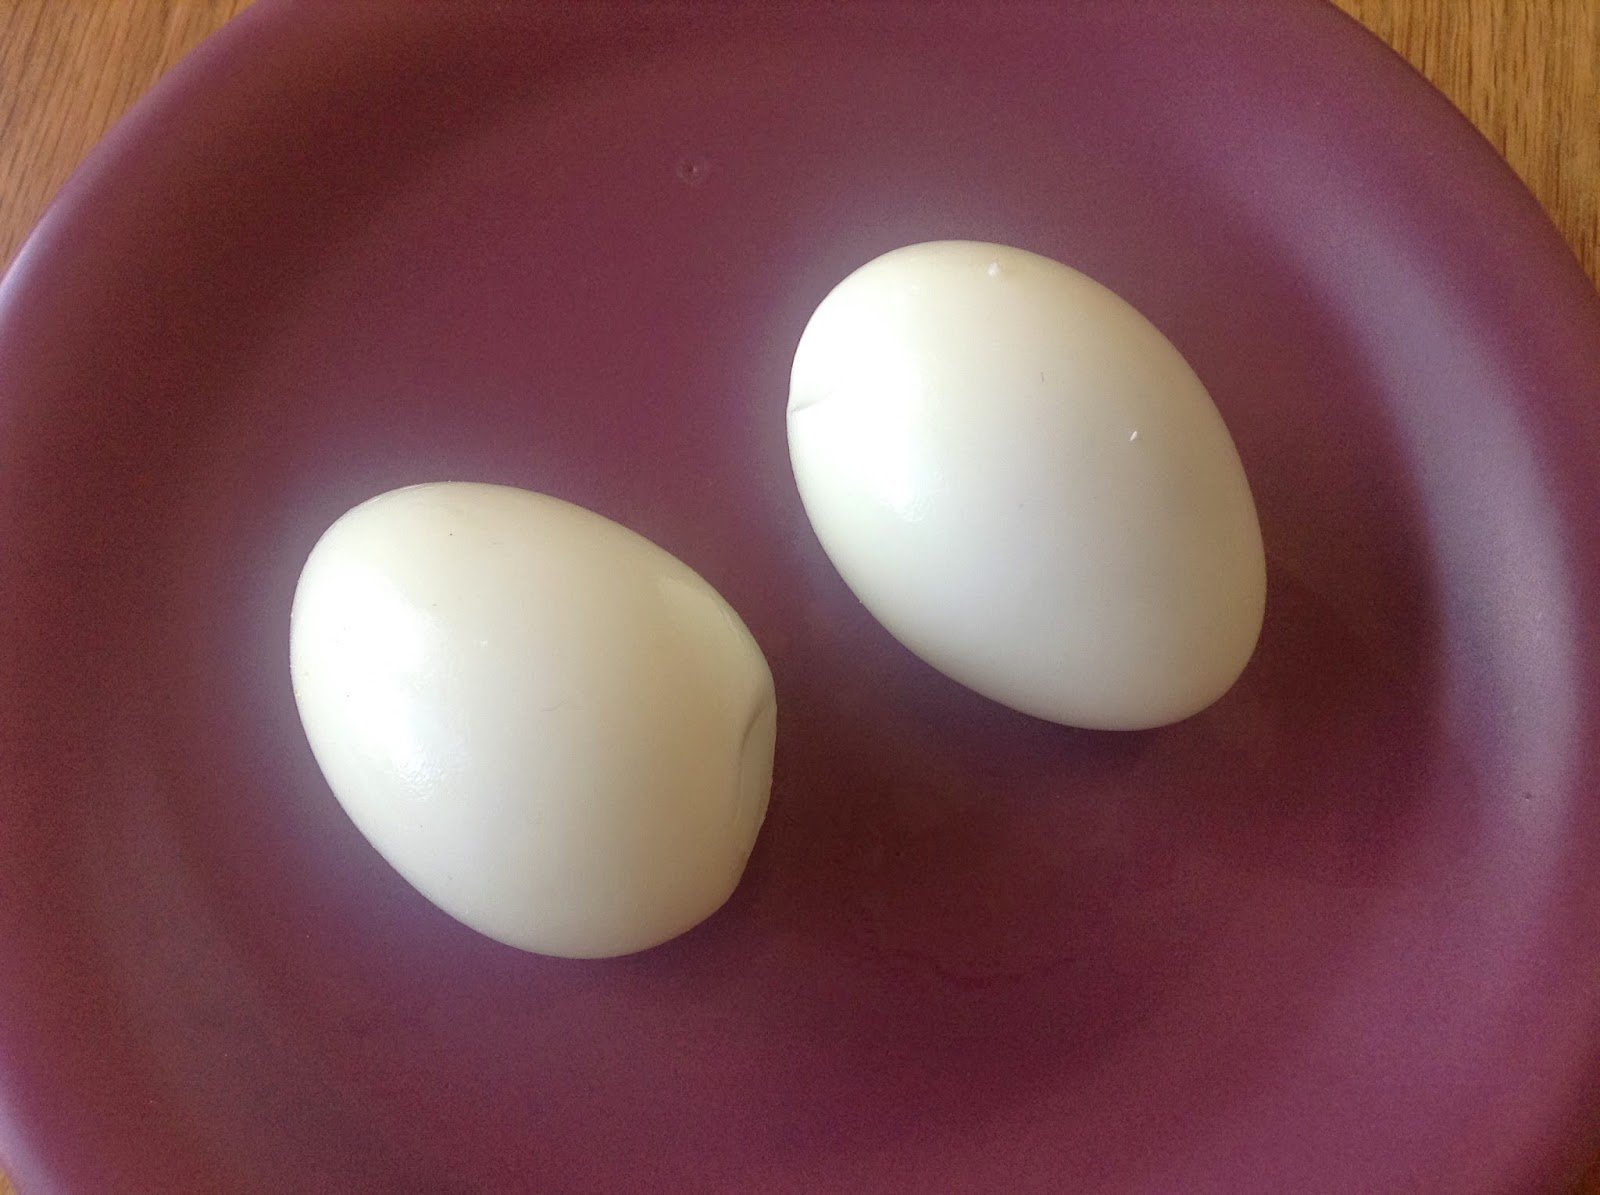 how to cook hard boiled eggs on induction stove